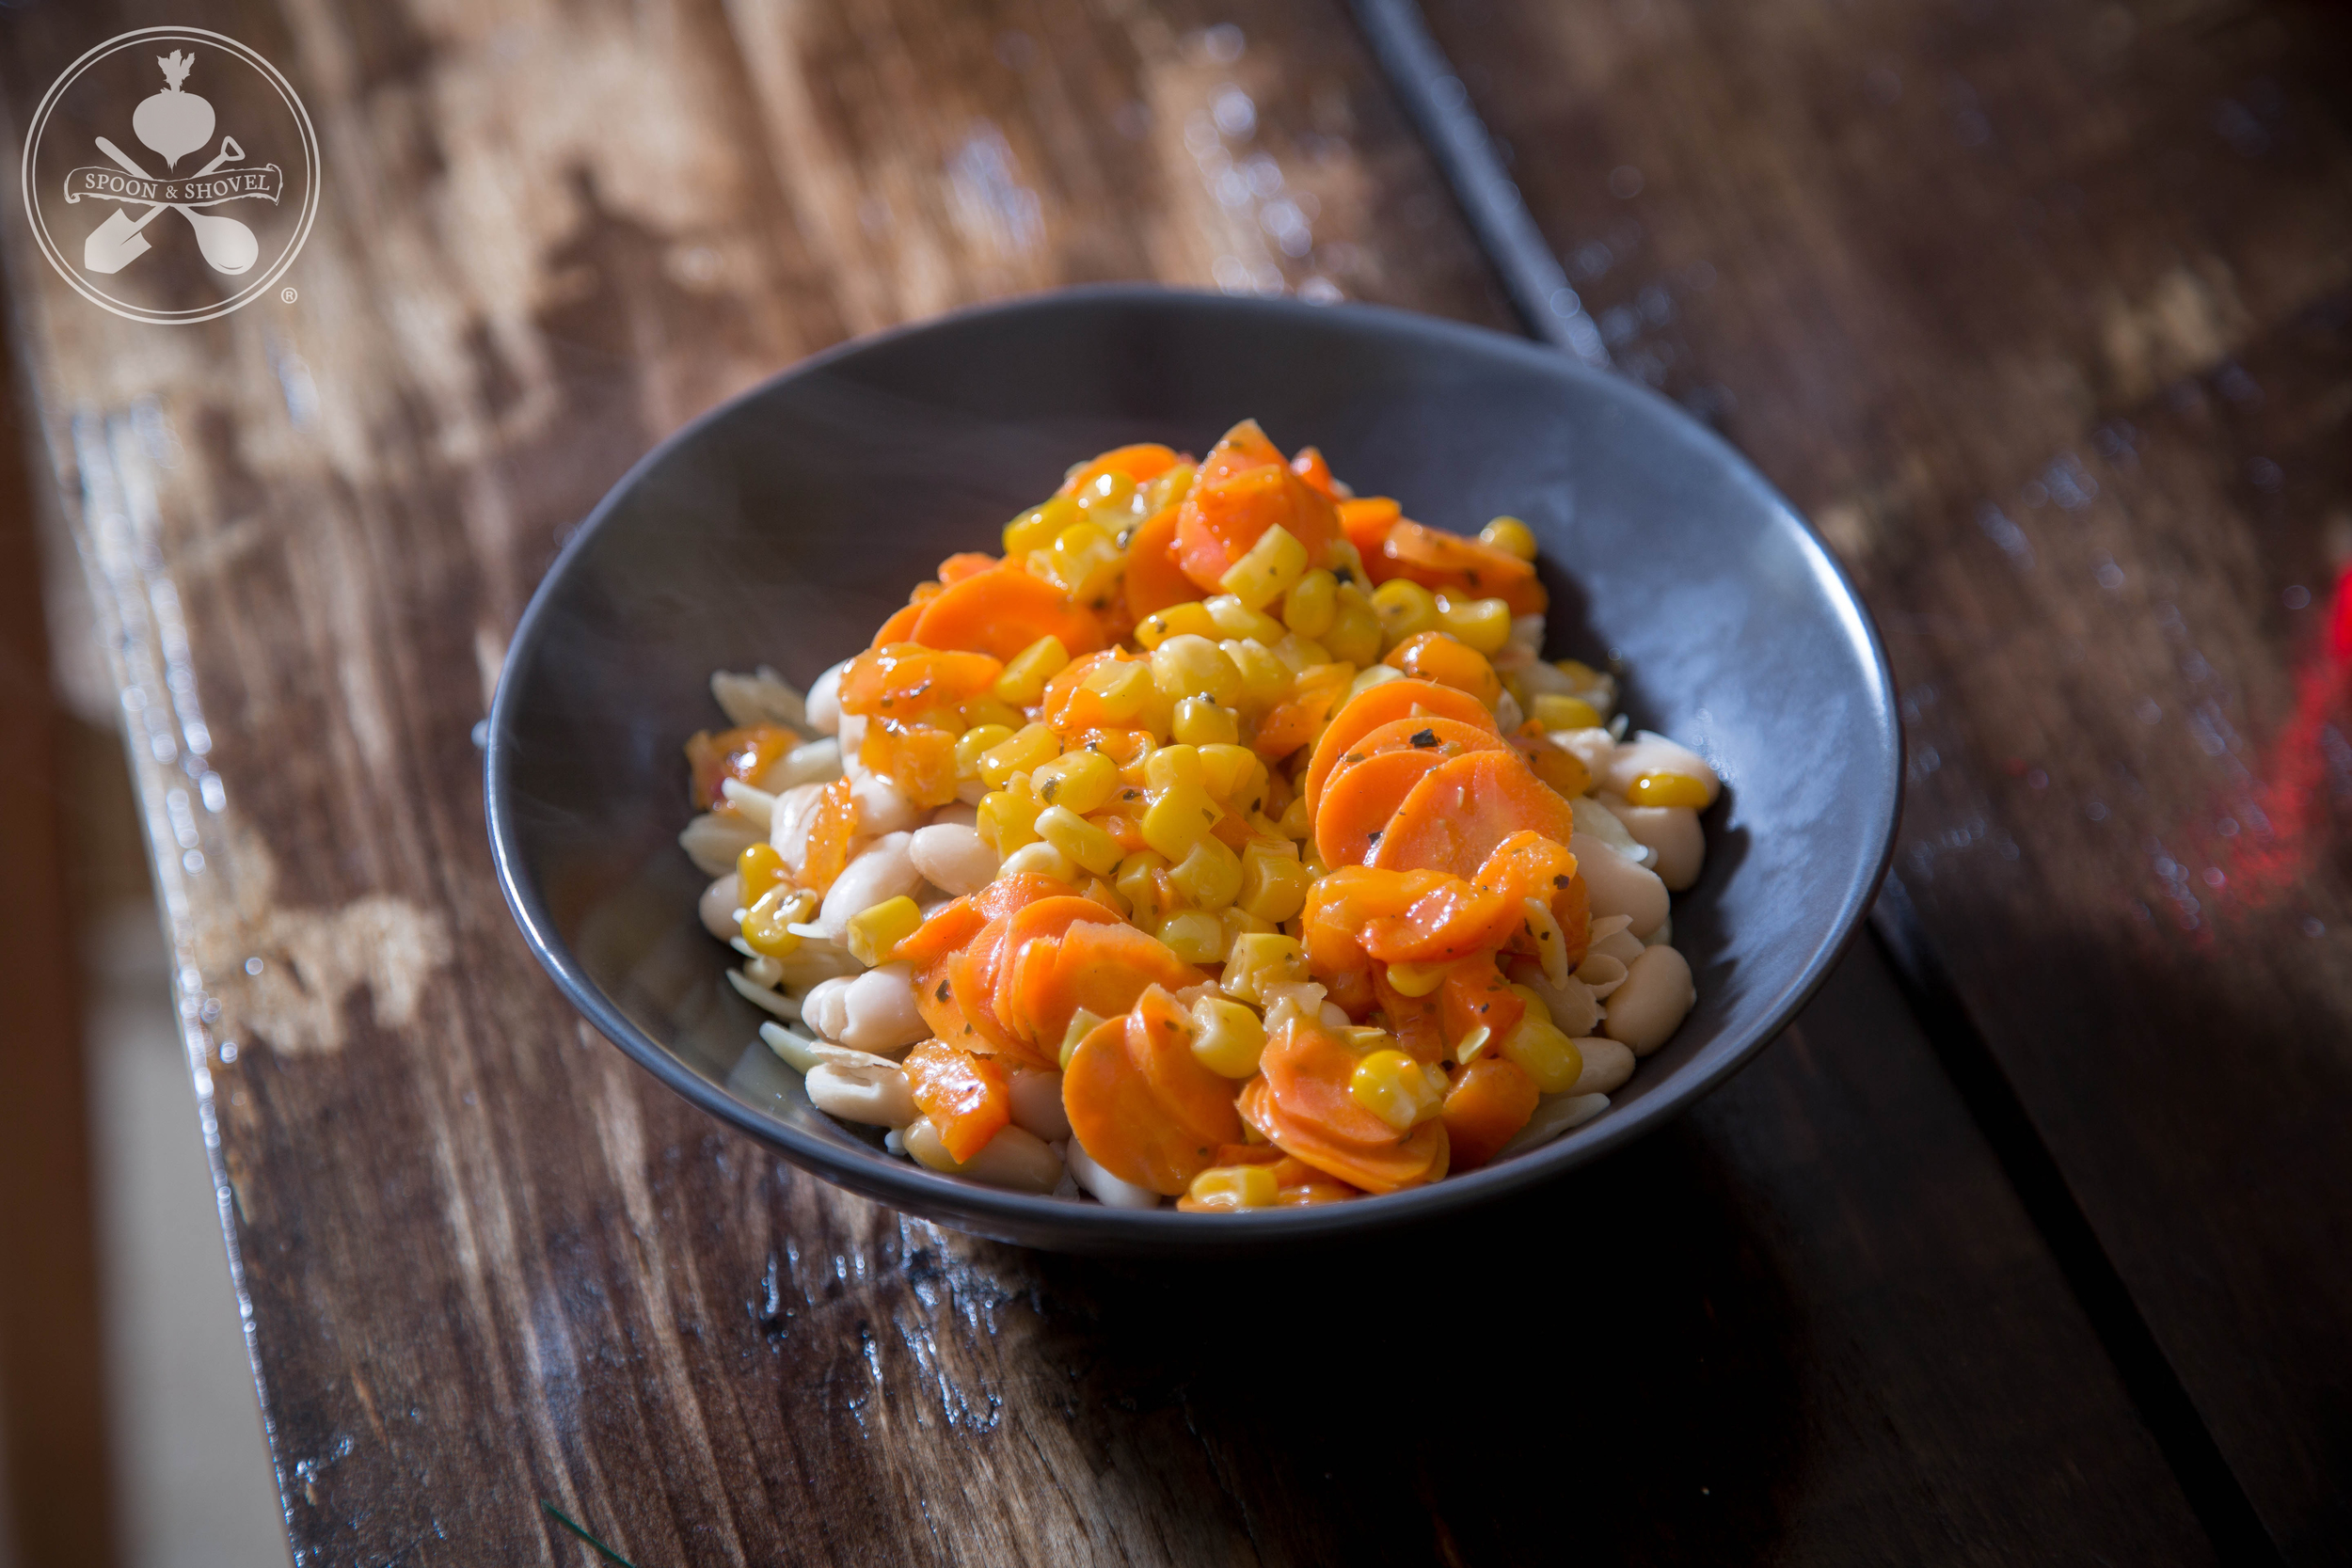 Veganorzo with sweet glazed veggies and white beans from The Spoon + Shovel